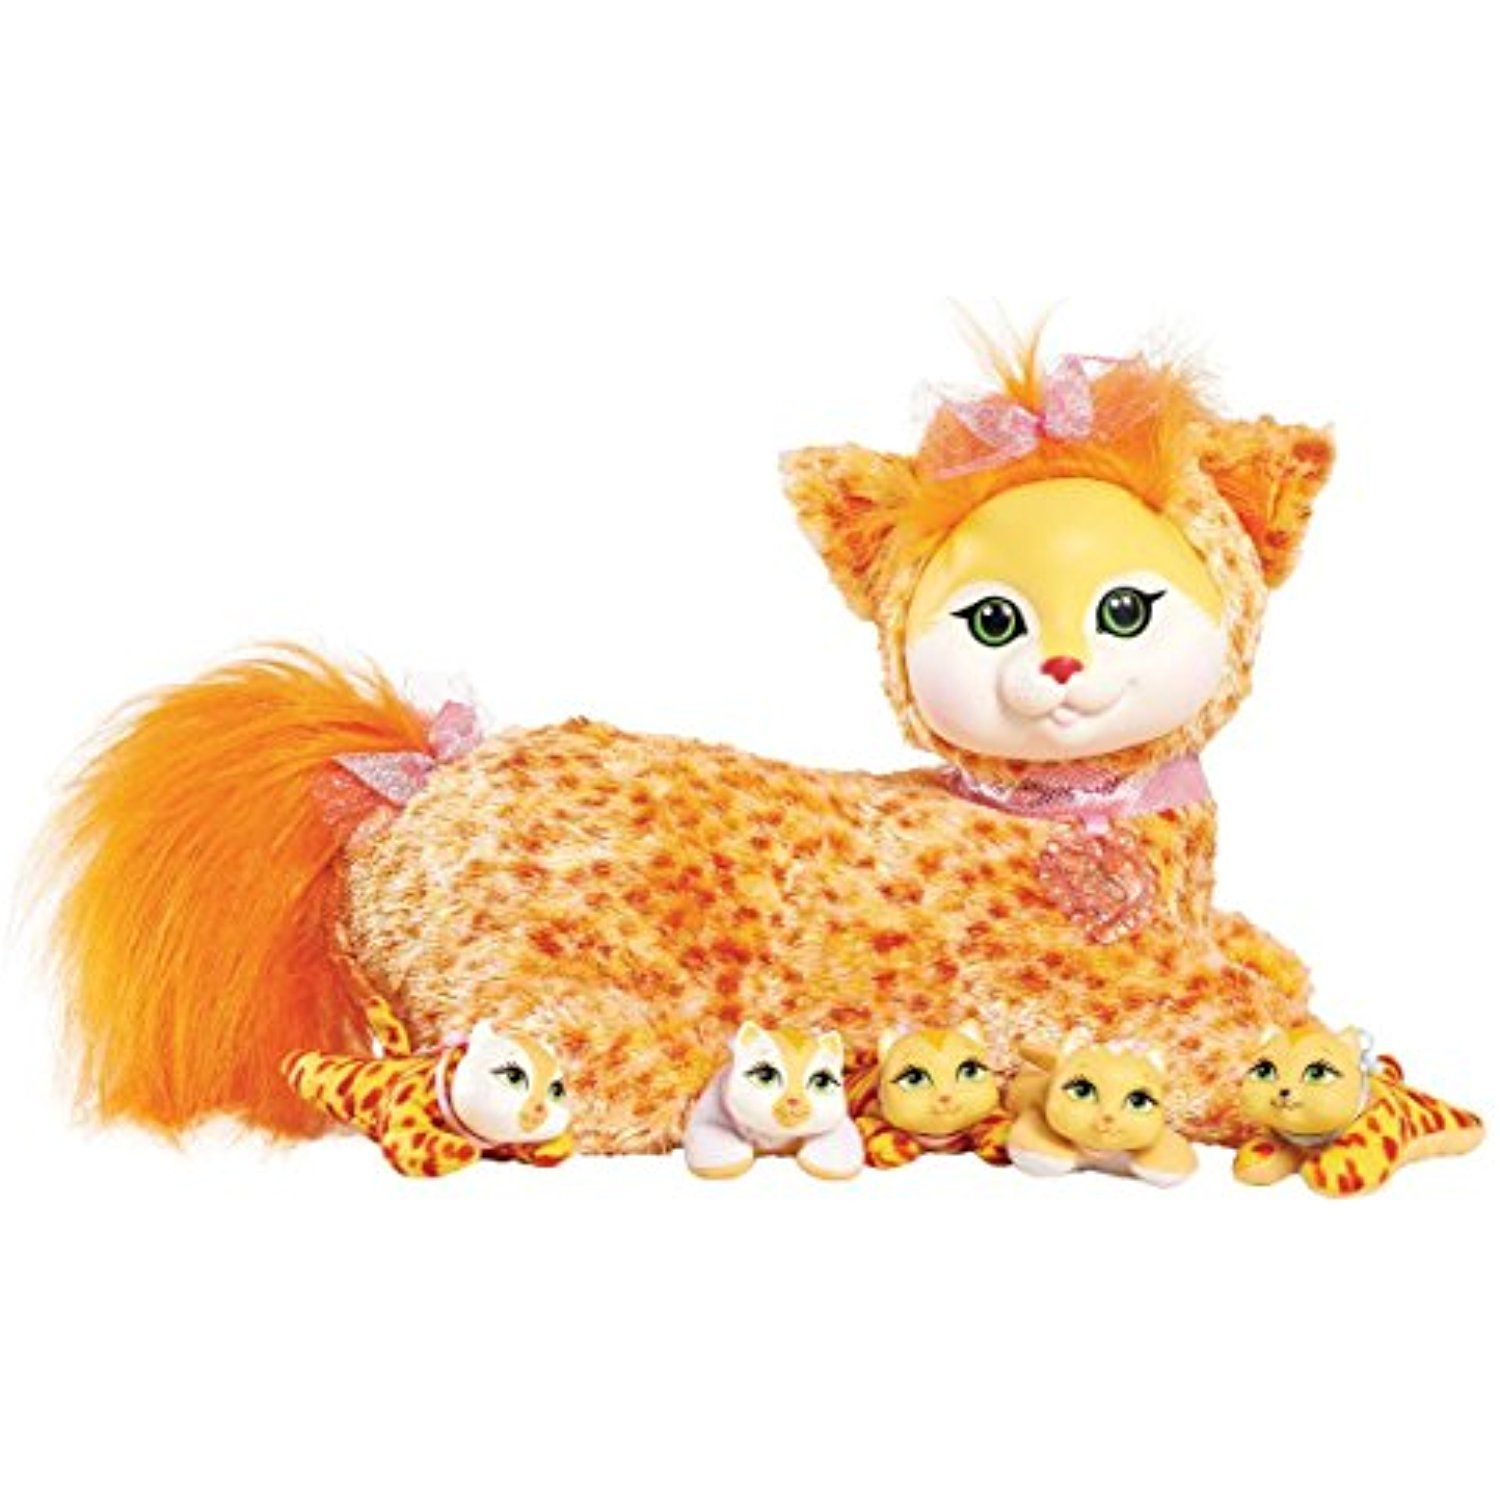 Kitty Surprise Plush Autumn Details Can Be Found By Clicking On The Image This Is An Affiliate Link Stuffedan Teddy Bear Stuffed Animal Kitty Kitten Mom